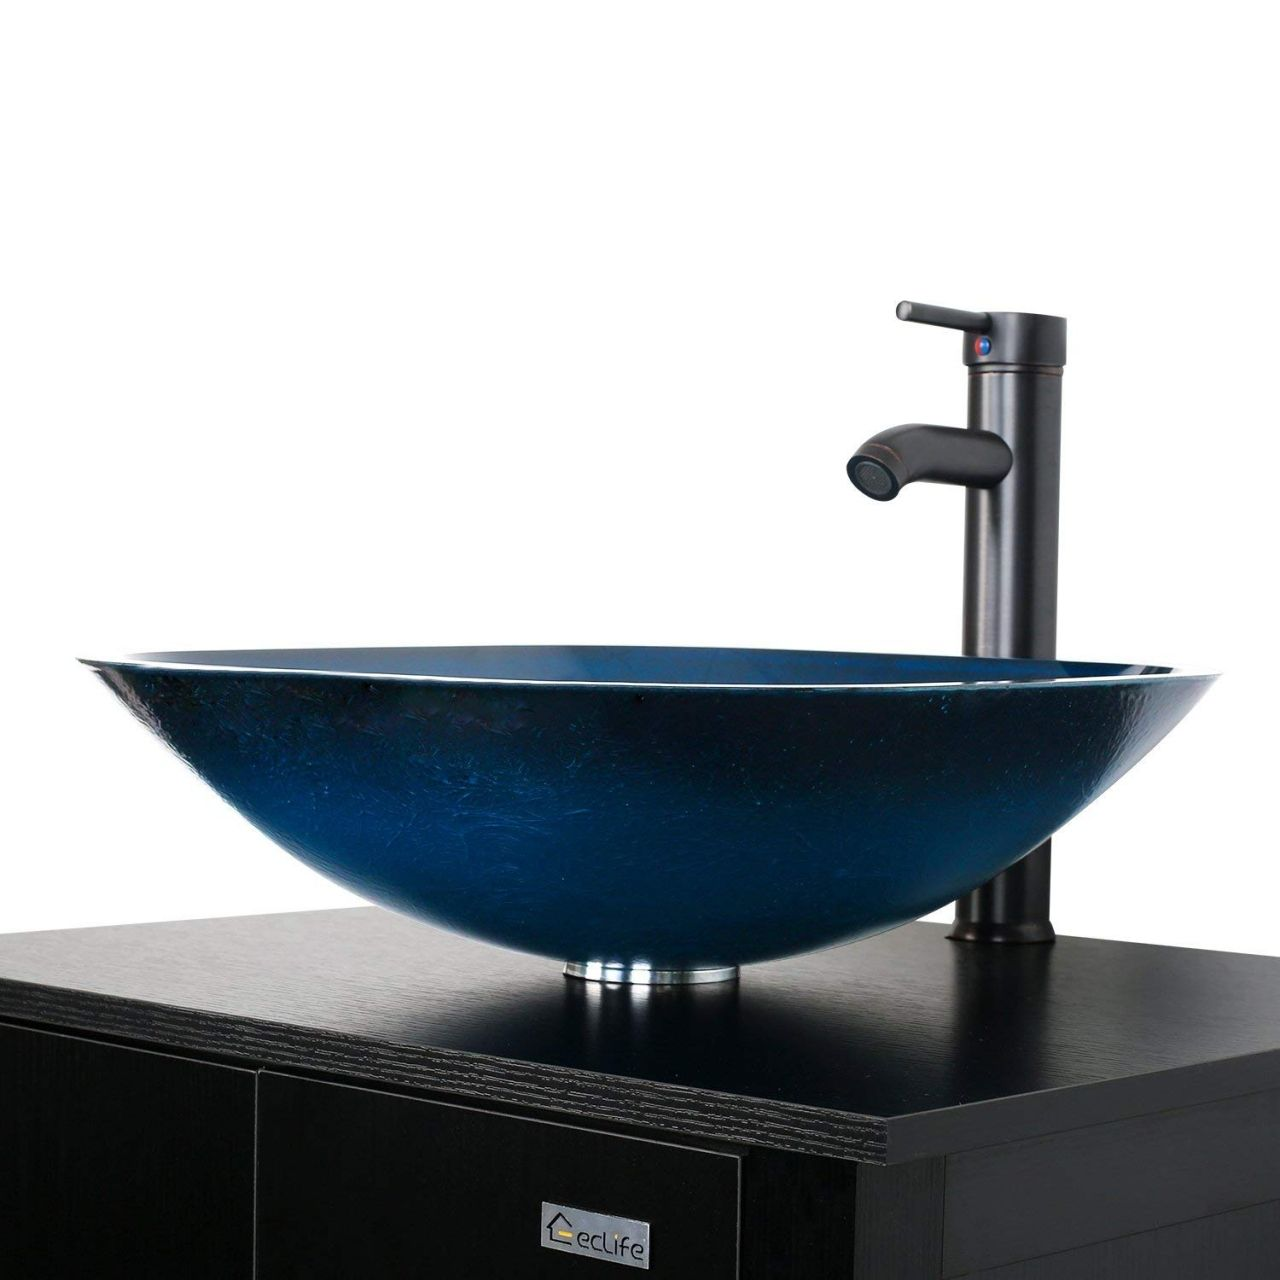 55 Above Counter Bathroom Sinks Glass Check More At Https Www Michelenails Com 20 Above Counter Bathroom Sink Sink Bathroom Sink Design Modern Bathroom Sink